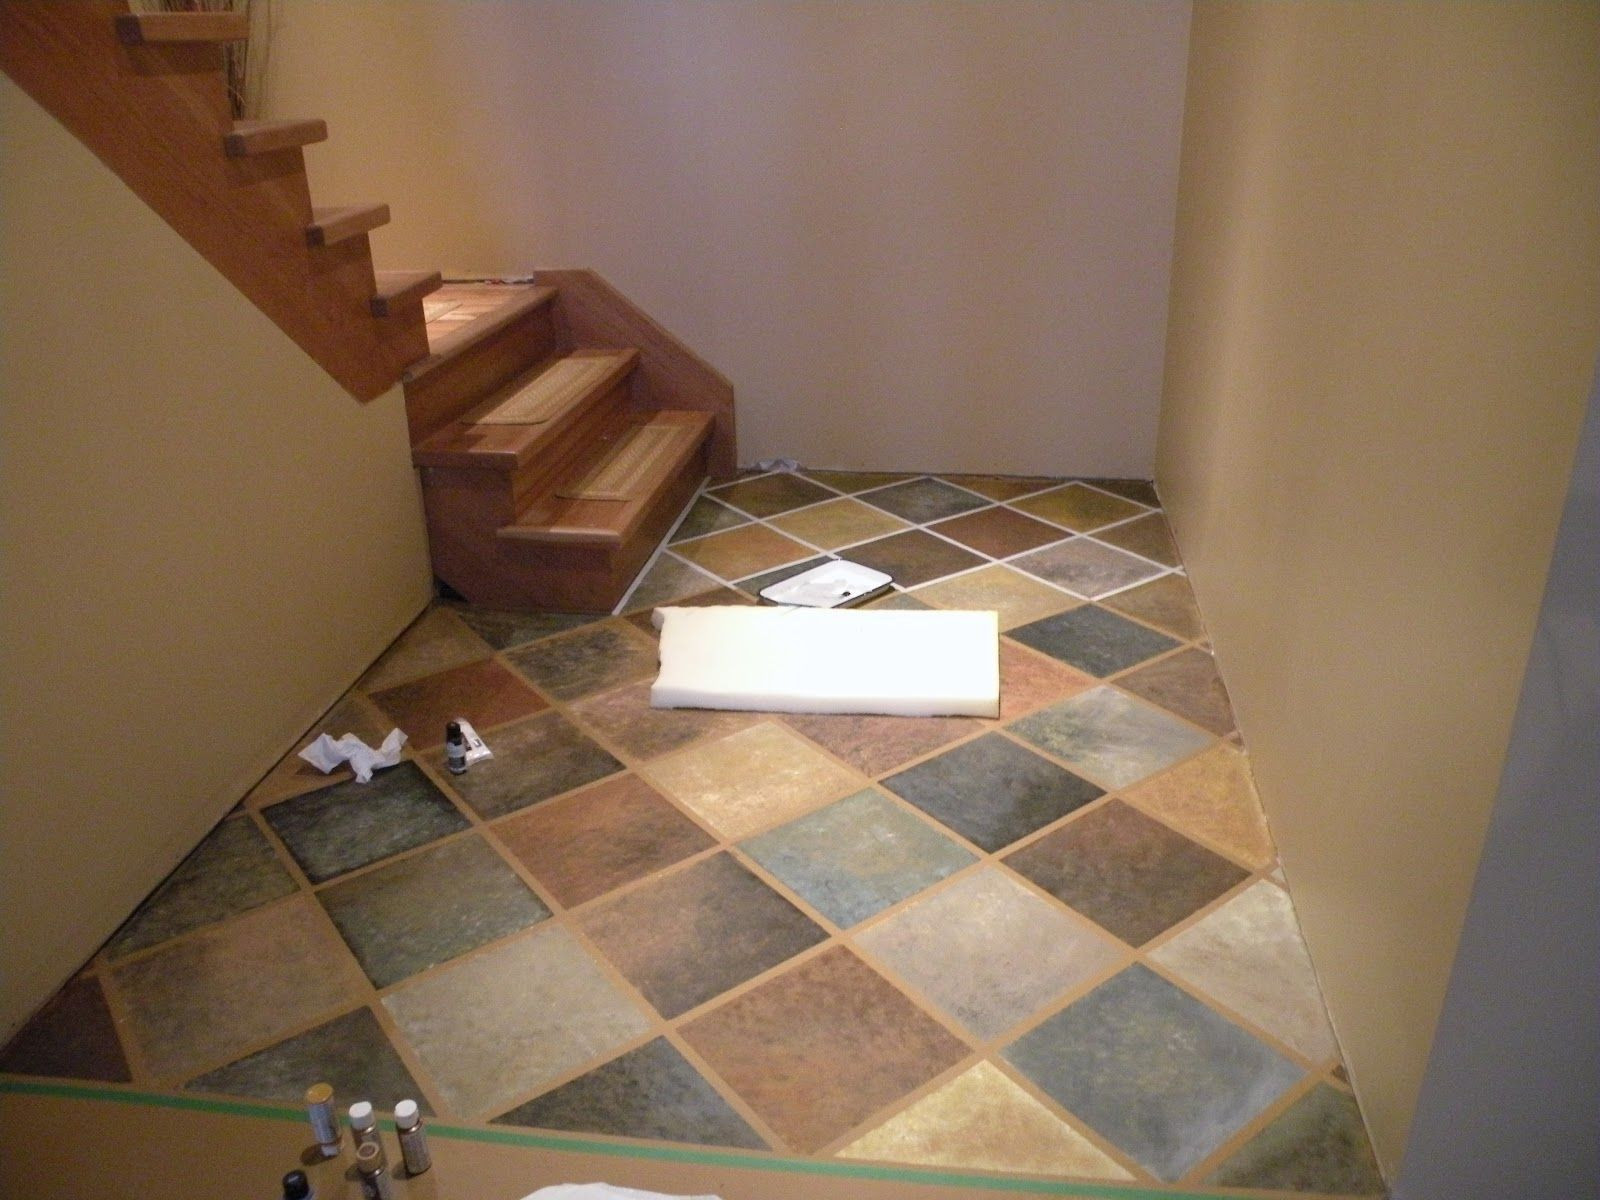 Best ideas about Painted Floors DIY . Save or Pin This is a cool pattern DIY painted concrete flooring We Now.